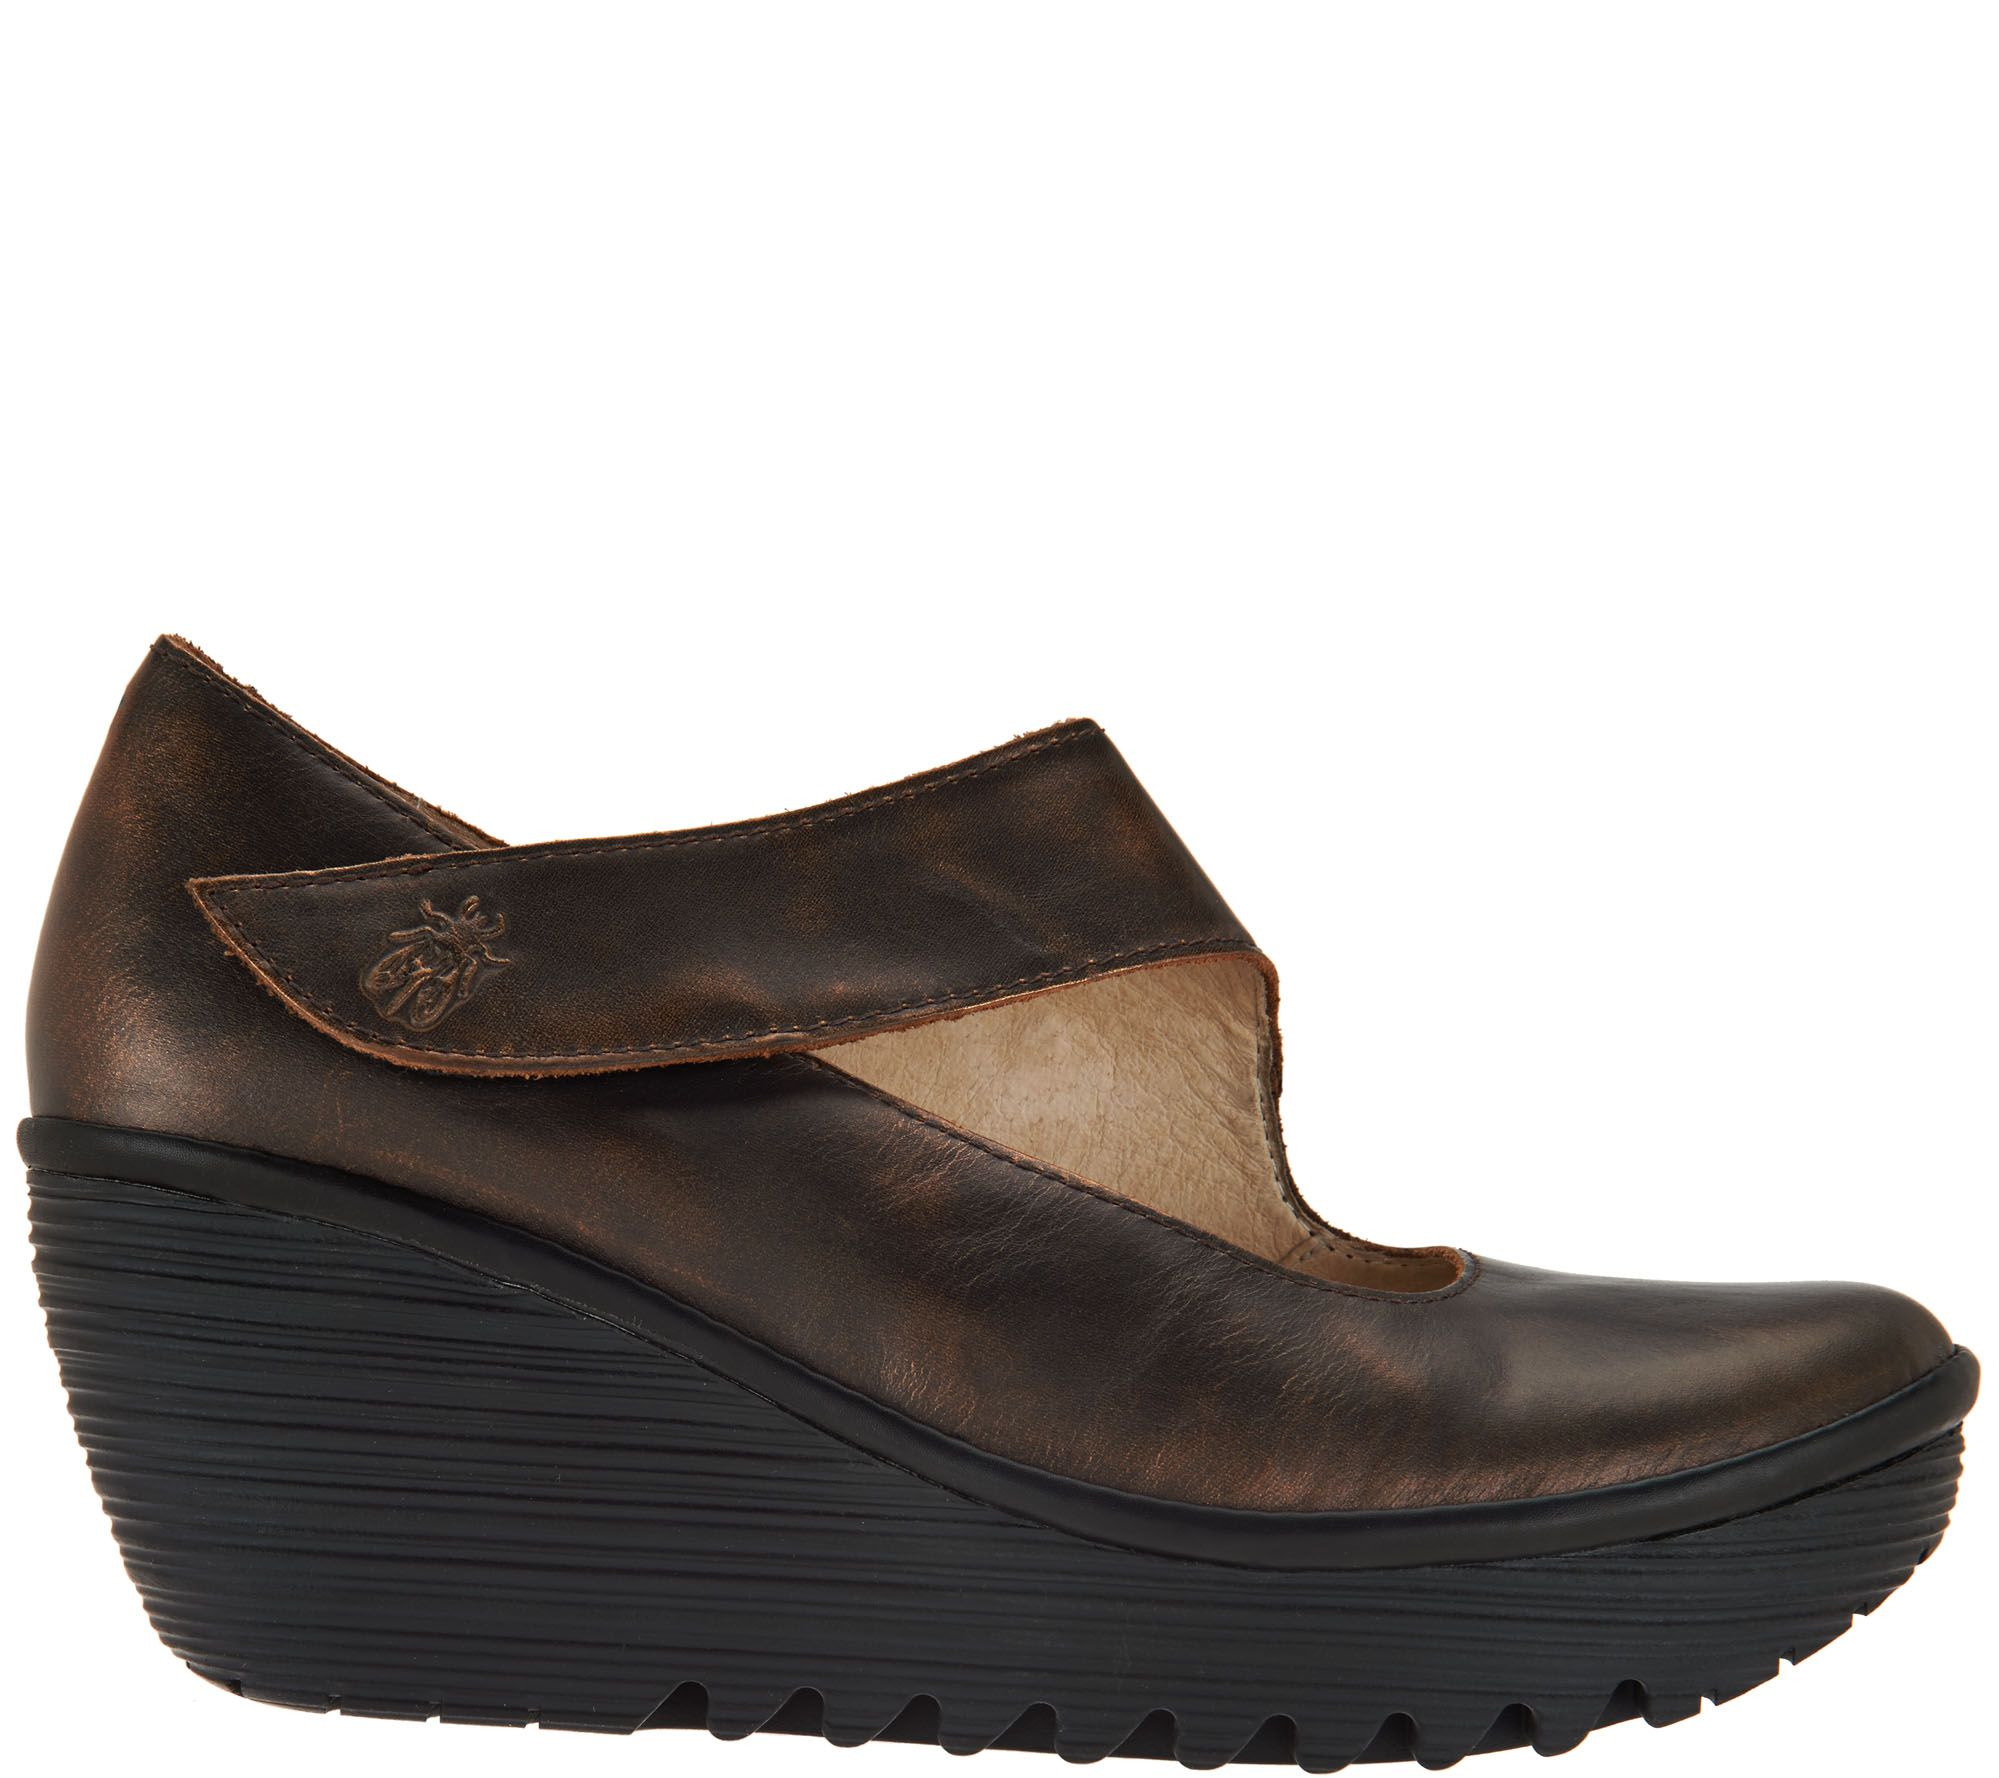 FLY London Leder Wedge Mary Janes Yasi Page 1 —  QVC  — 8763f0